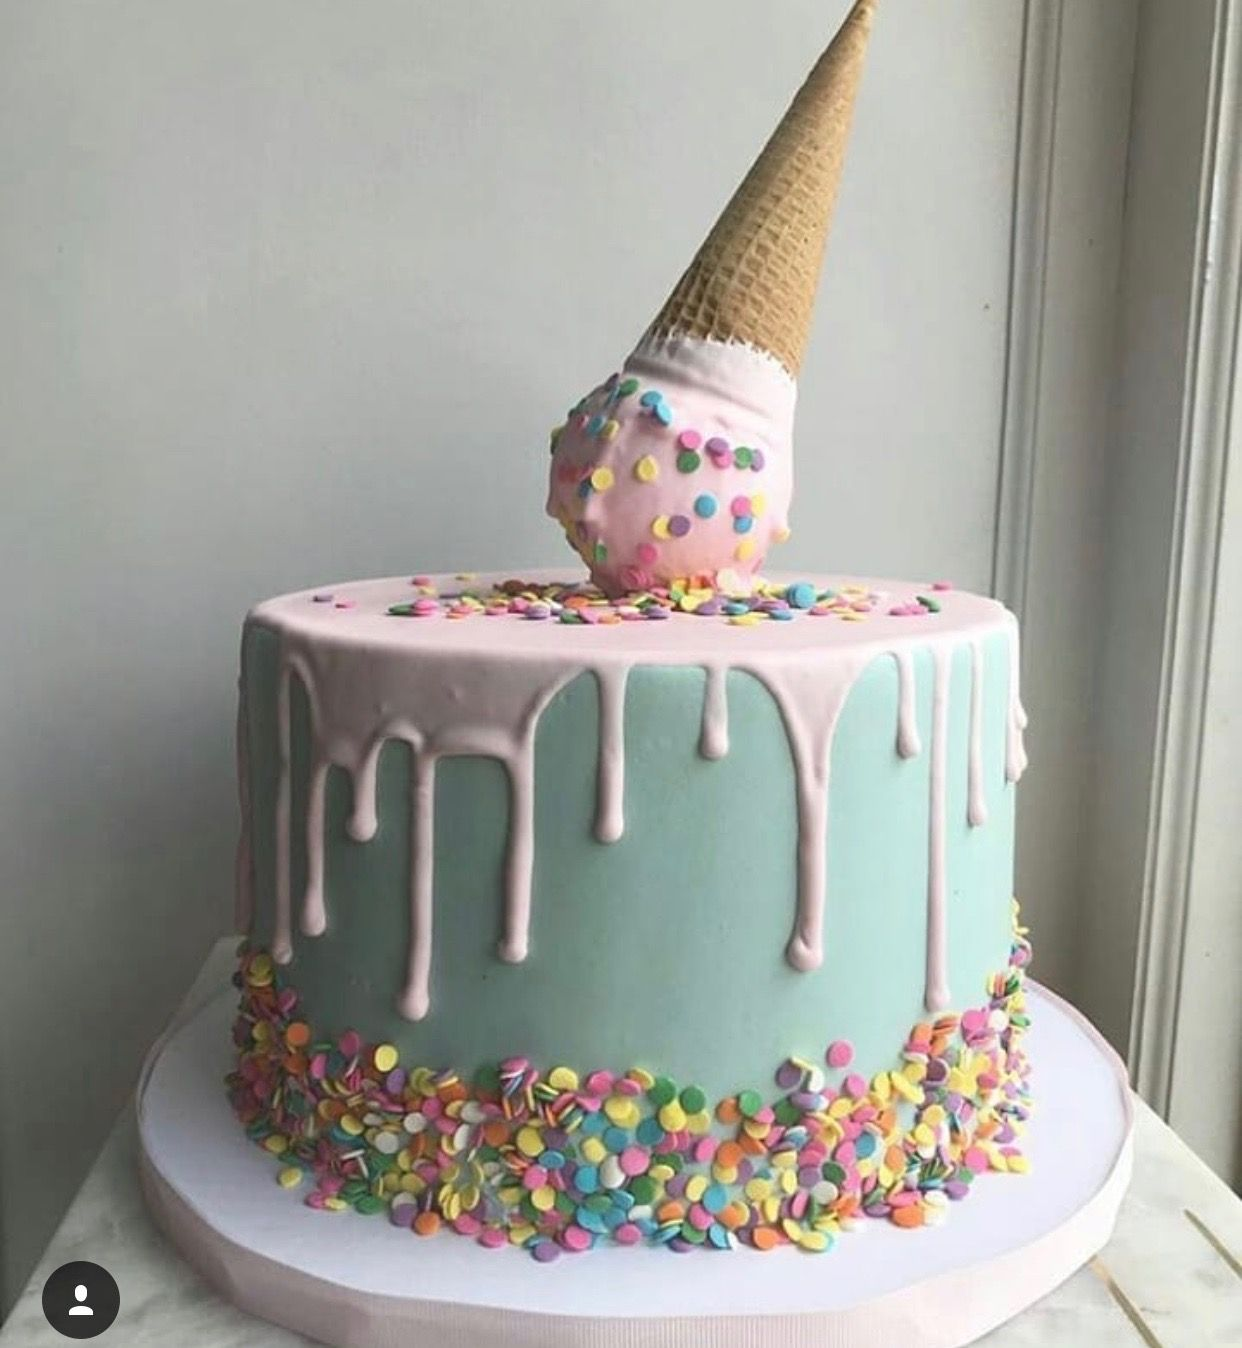 Pin By Kathy Atkins On Cupcakes And Cakes